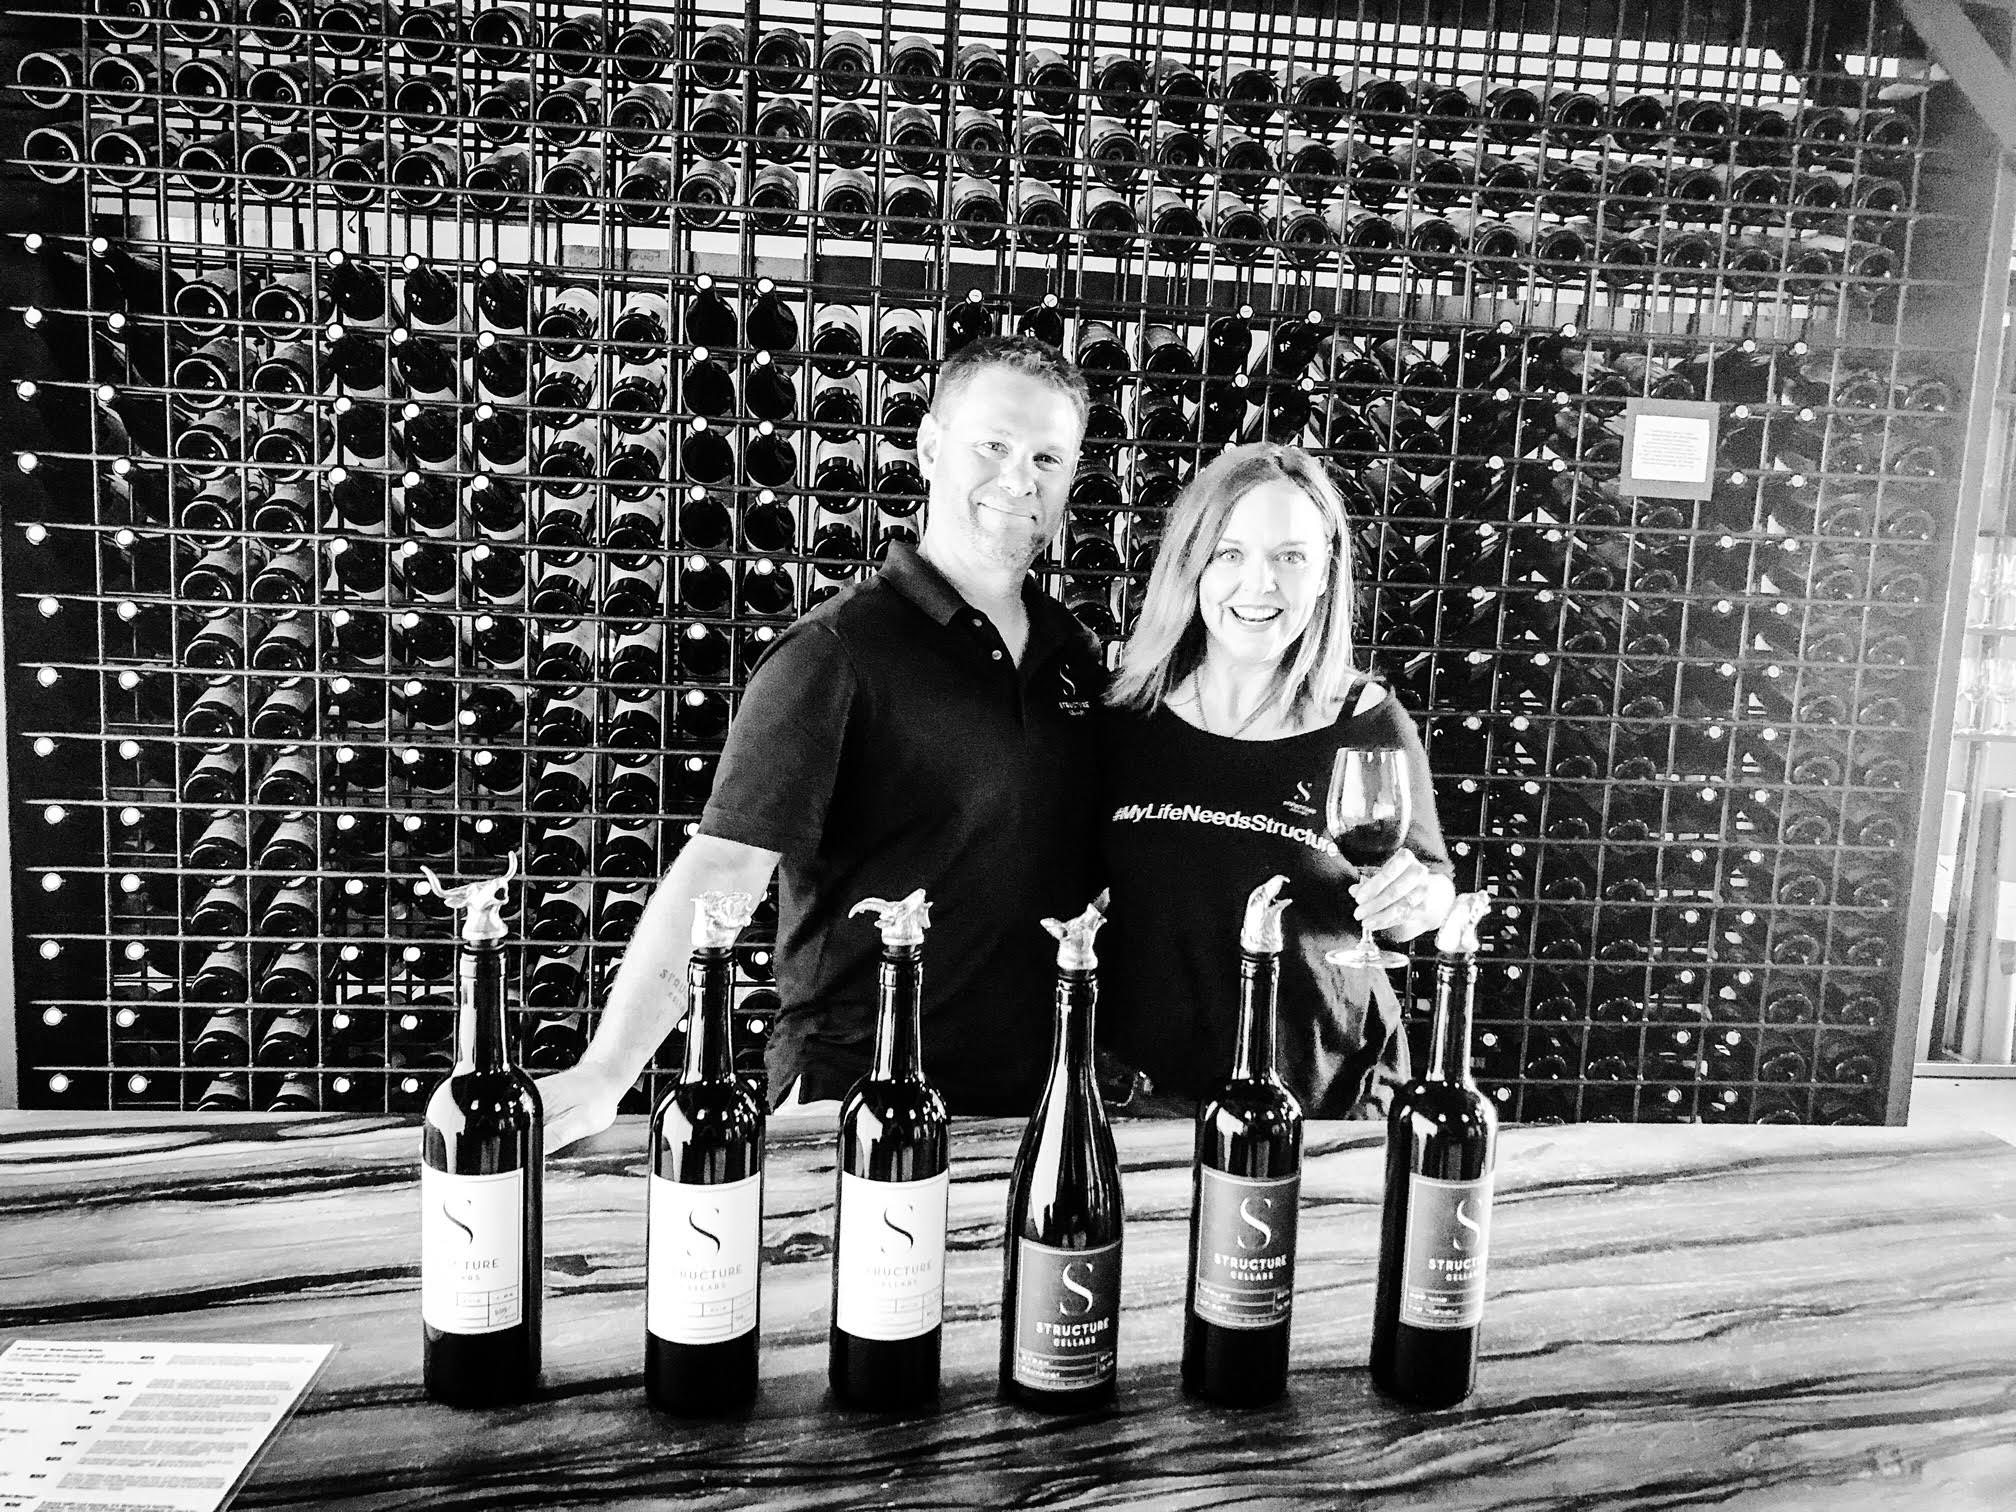 Some of the great people in Washington Wine, Structure Cellars was founded by Brian Grasso and Brandee Slosar.